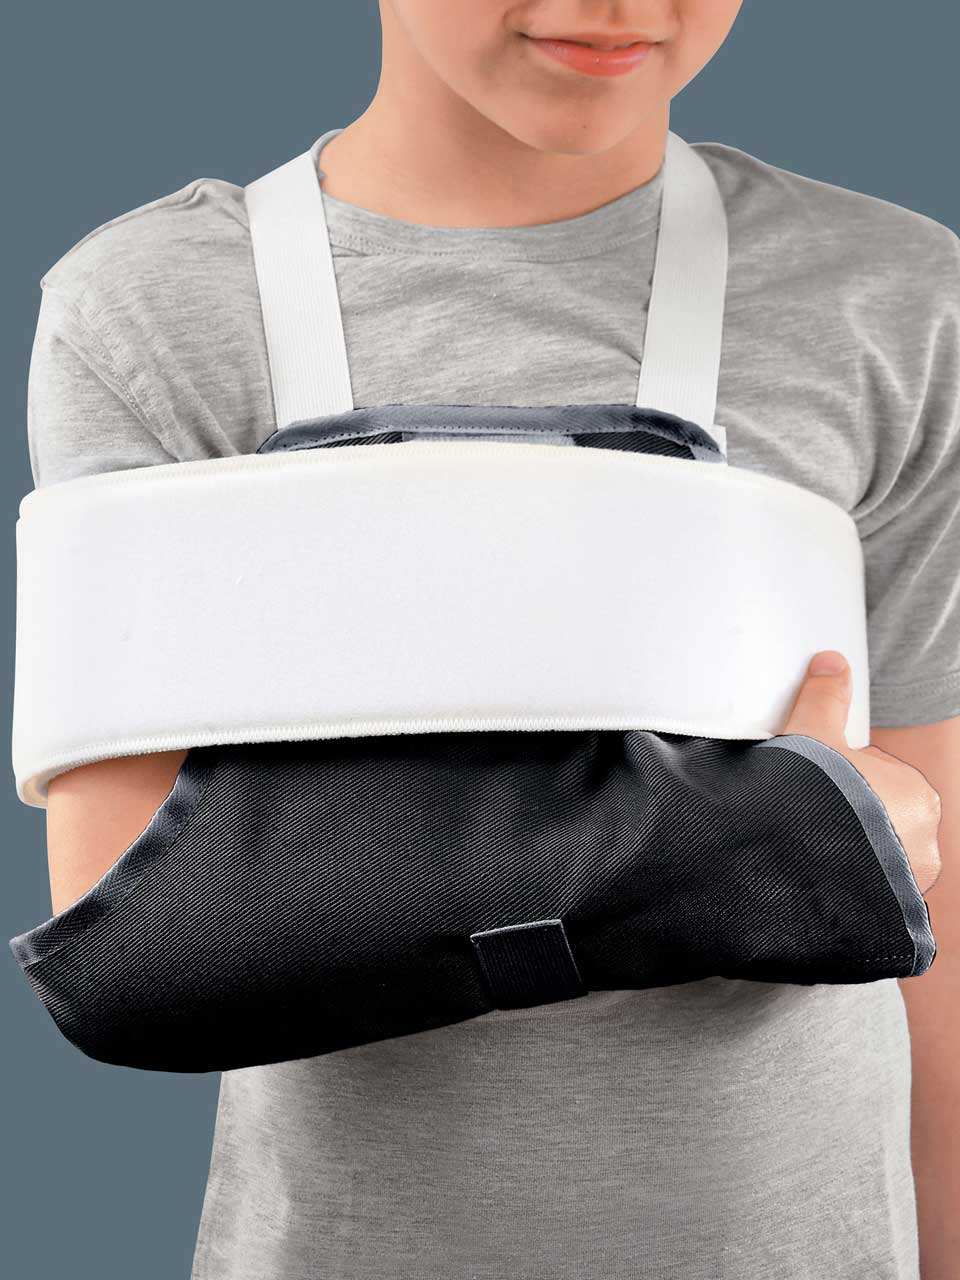 ORTHO 14-305 - Immobilizer for arm and shoulder, with elbow support (pediatric)